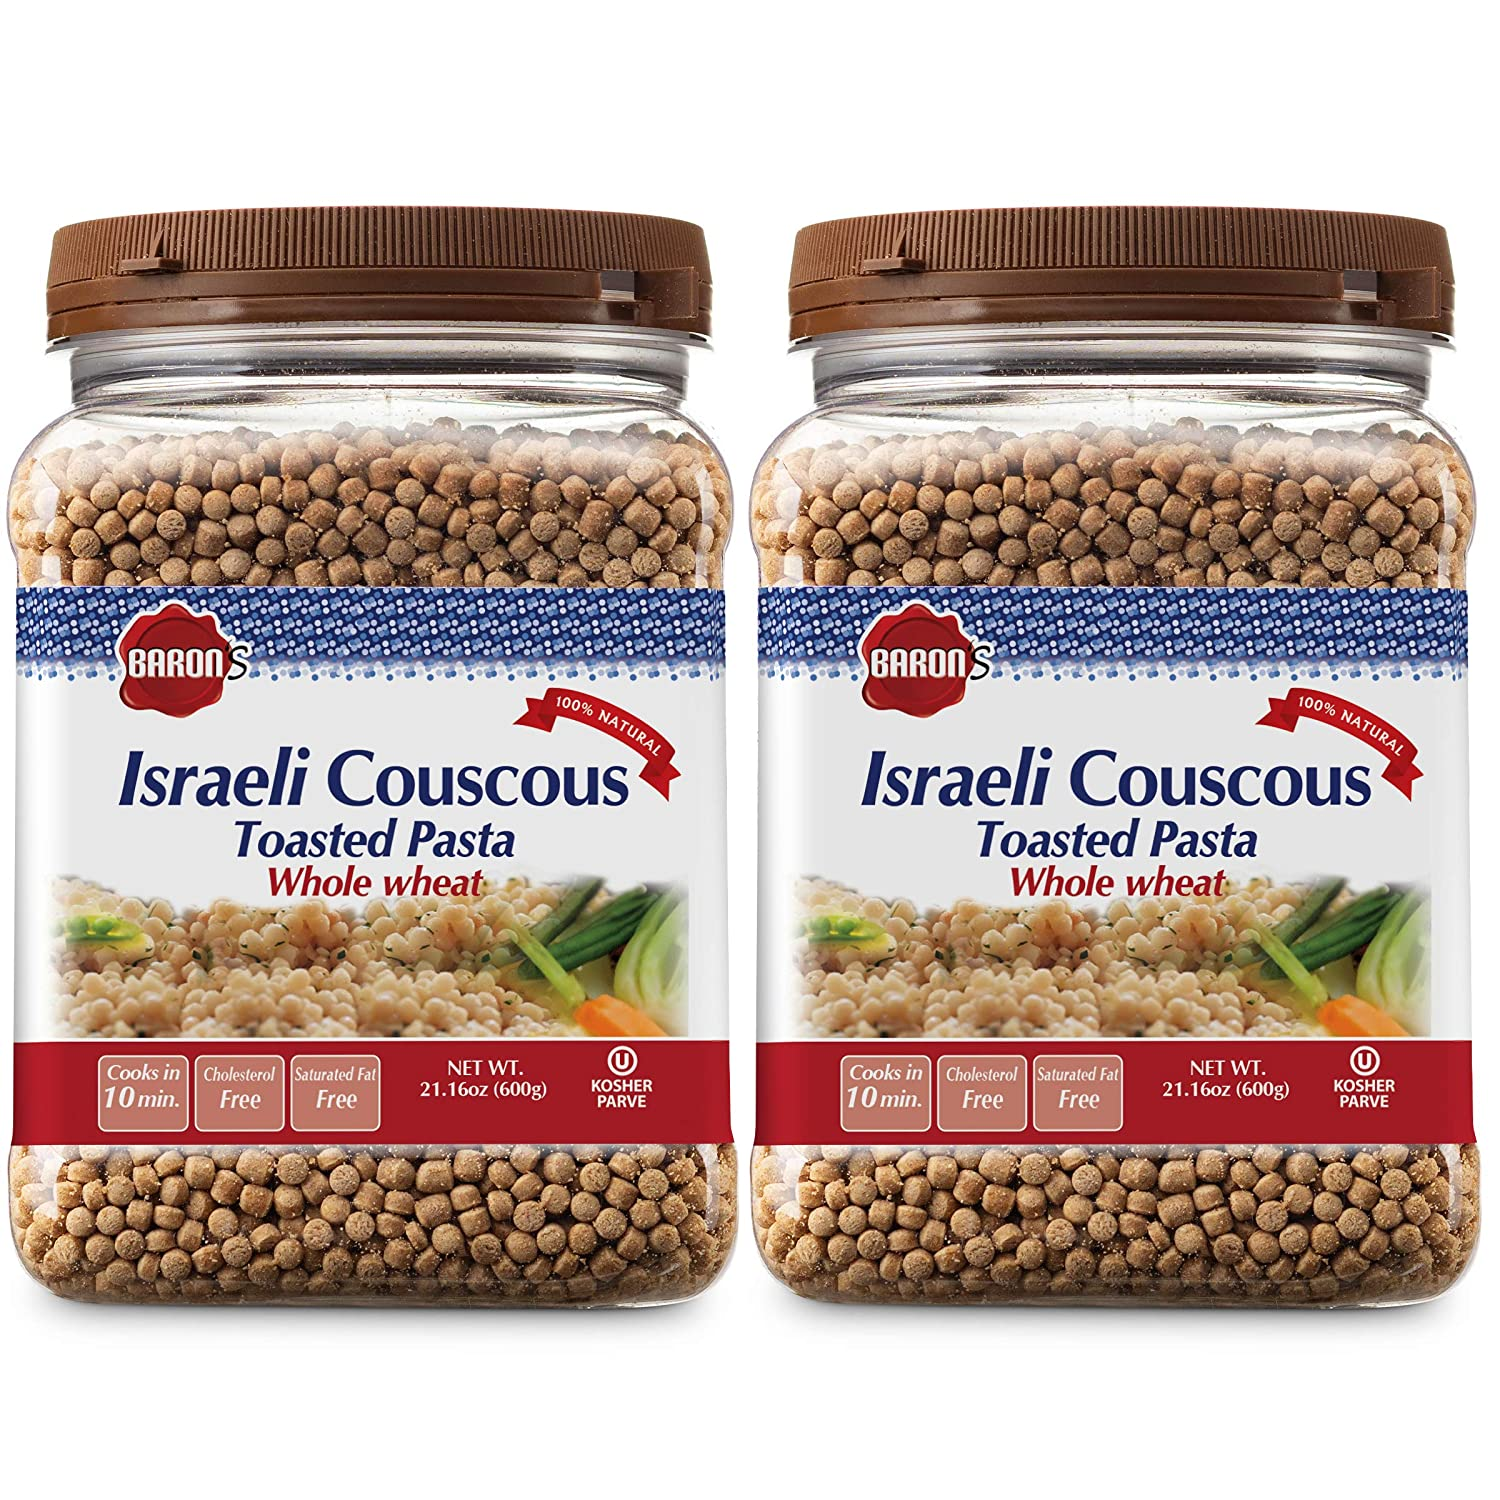 Baron's Israeli Whole Wheat Couscous Toasted Pasta | 100% Natural Pearled Noodles for Soups, Side Dishes & More | Cooks in 10 Minutes! | Kosher | 2 Pack 21.16oz Jars